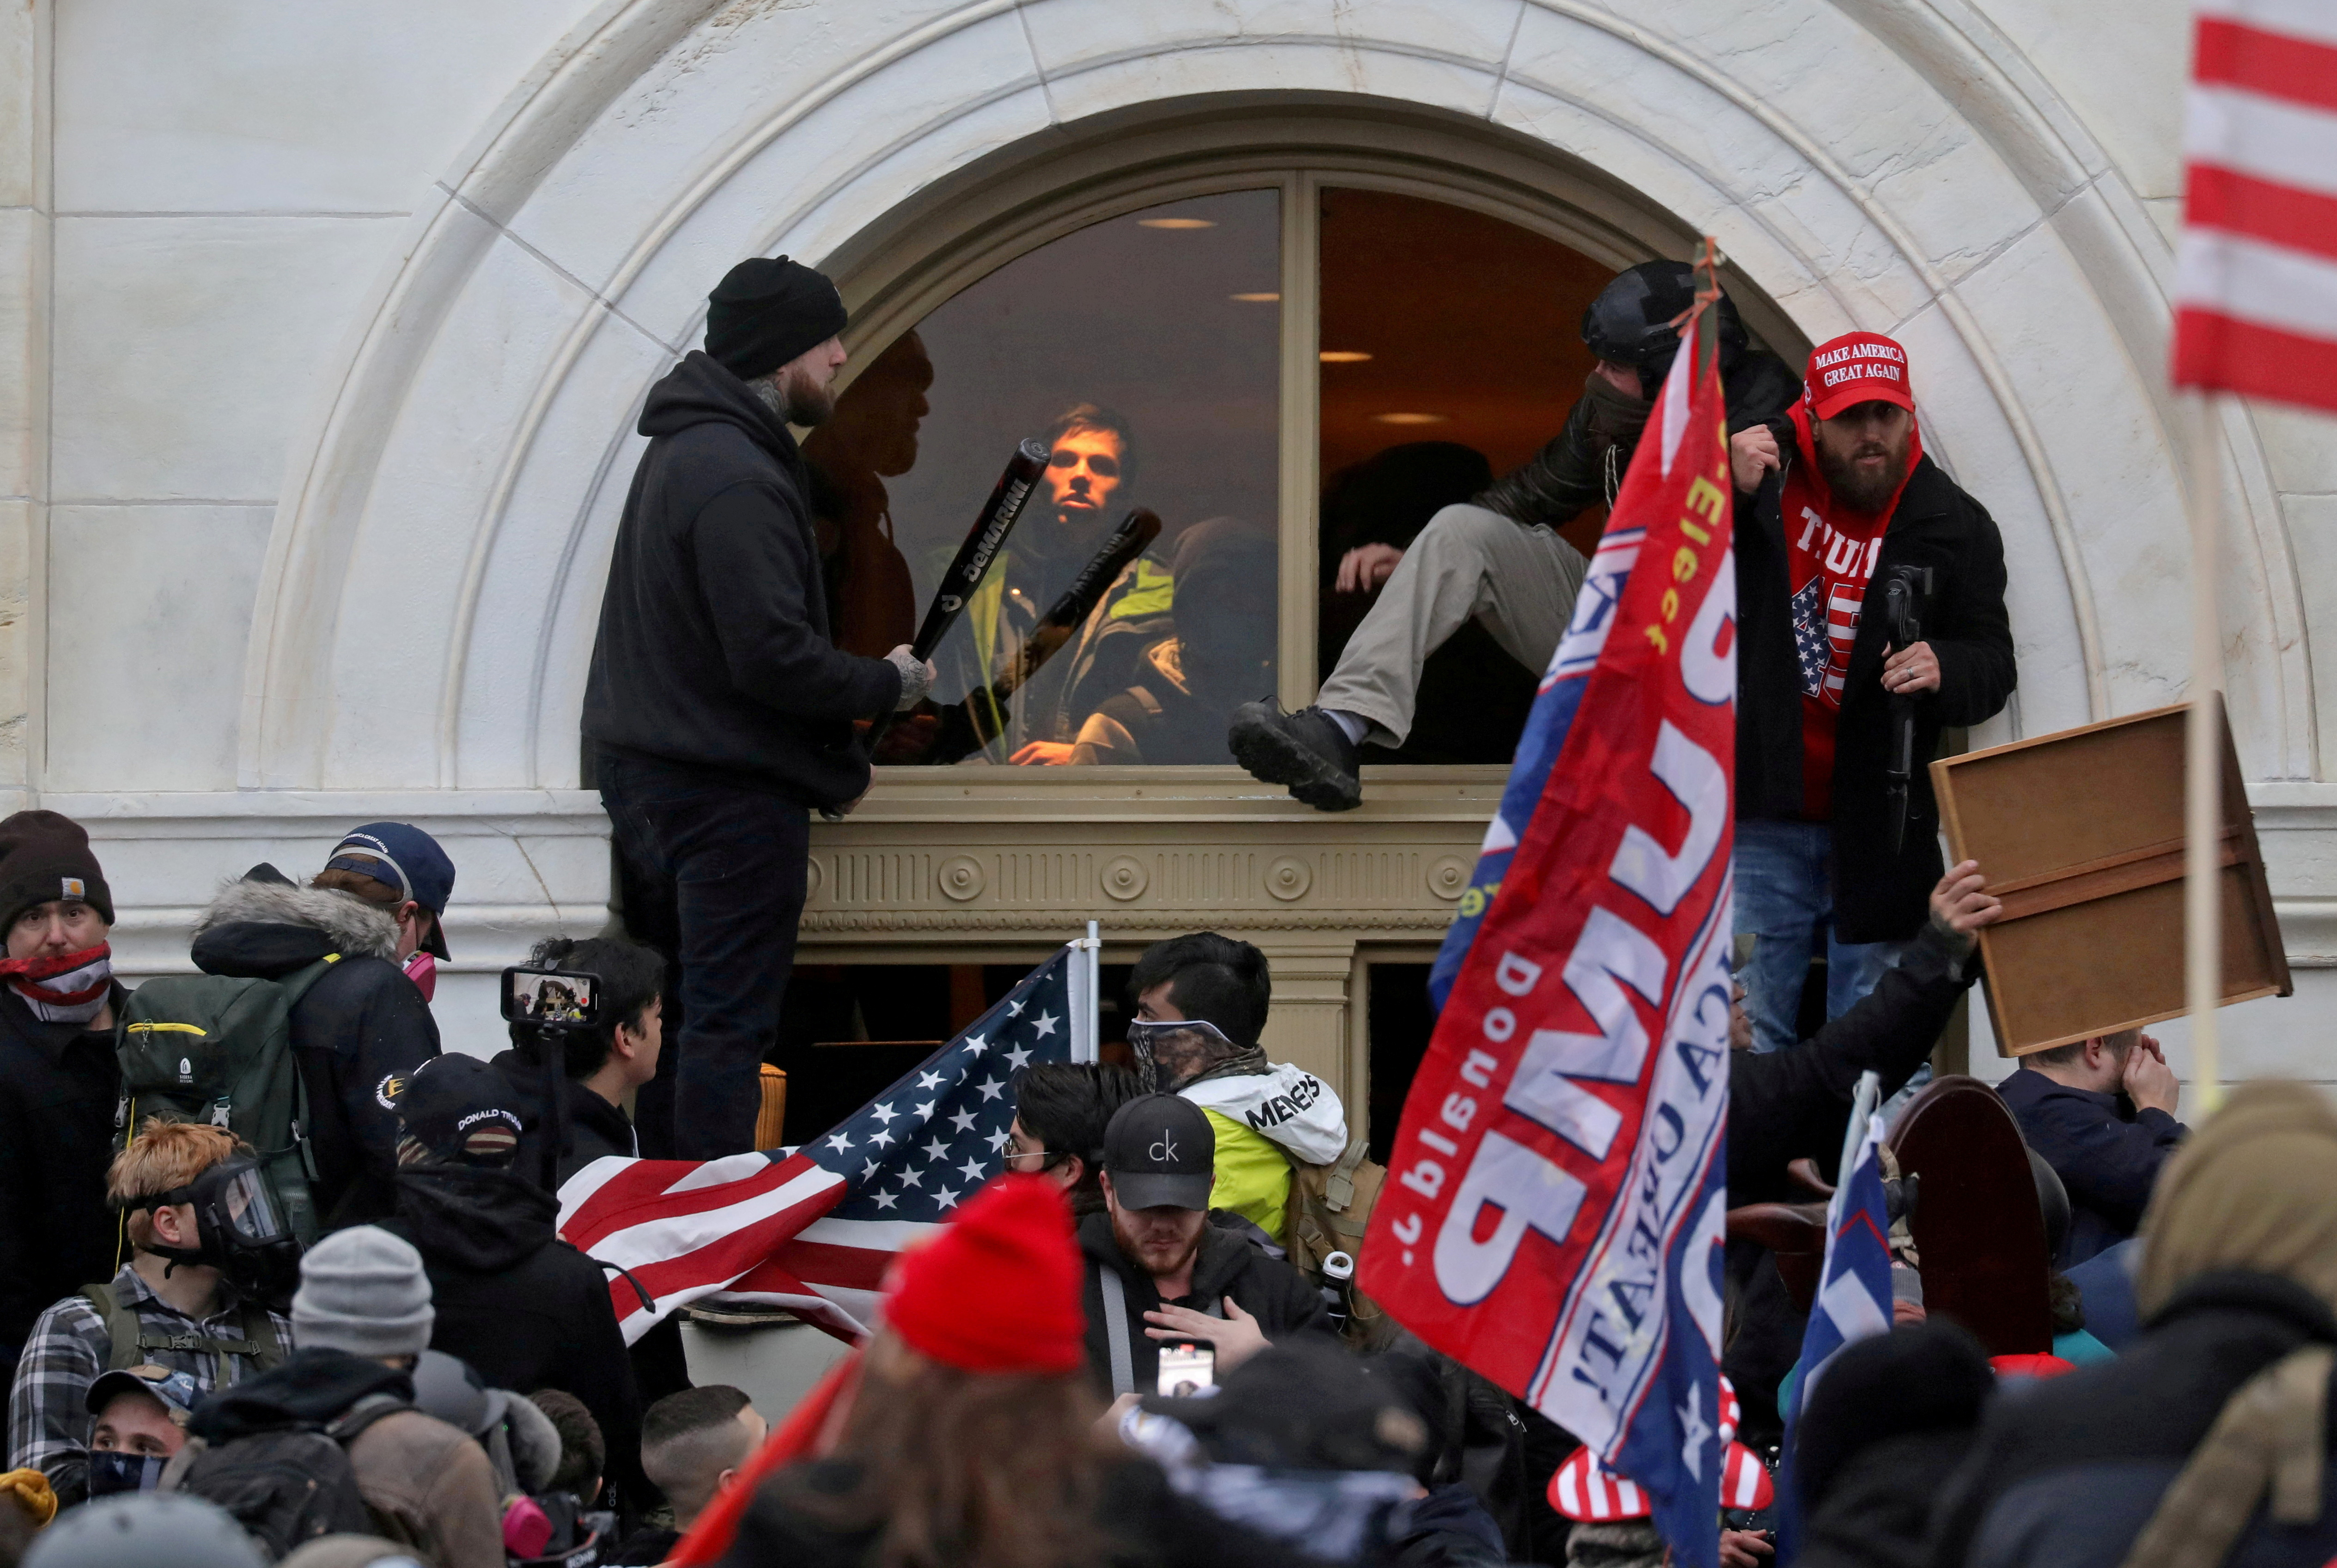 A mob of supporters of then-U.S. President Donald Trump climb through a window they broke as they storm the U.S. Capitol Building in Washington, U.S., January 6, 2021. REUTERS/Leah Millis/File Photo